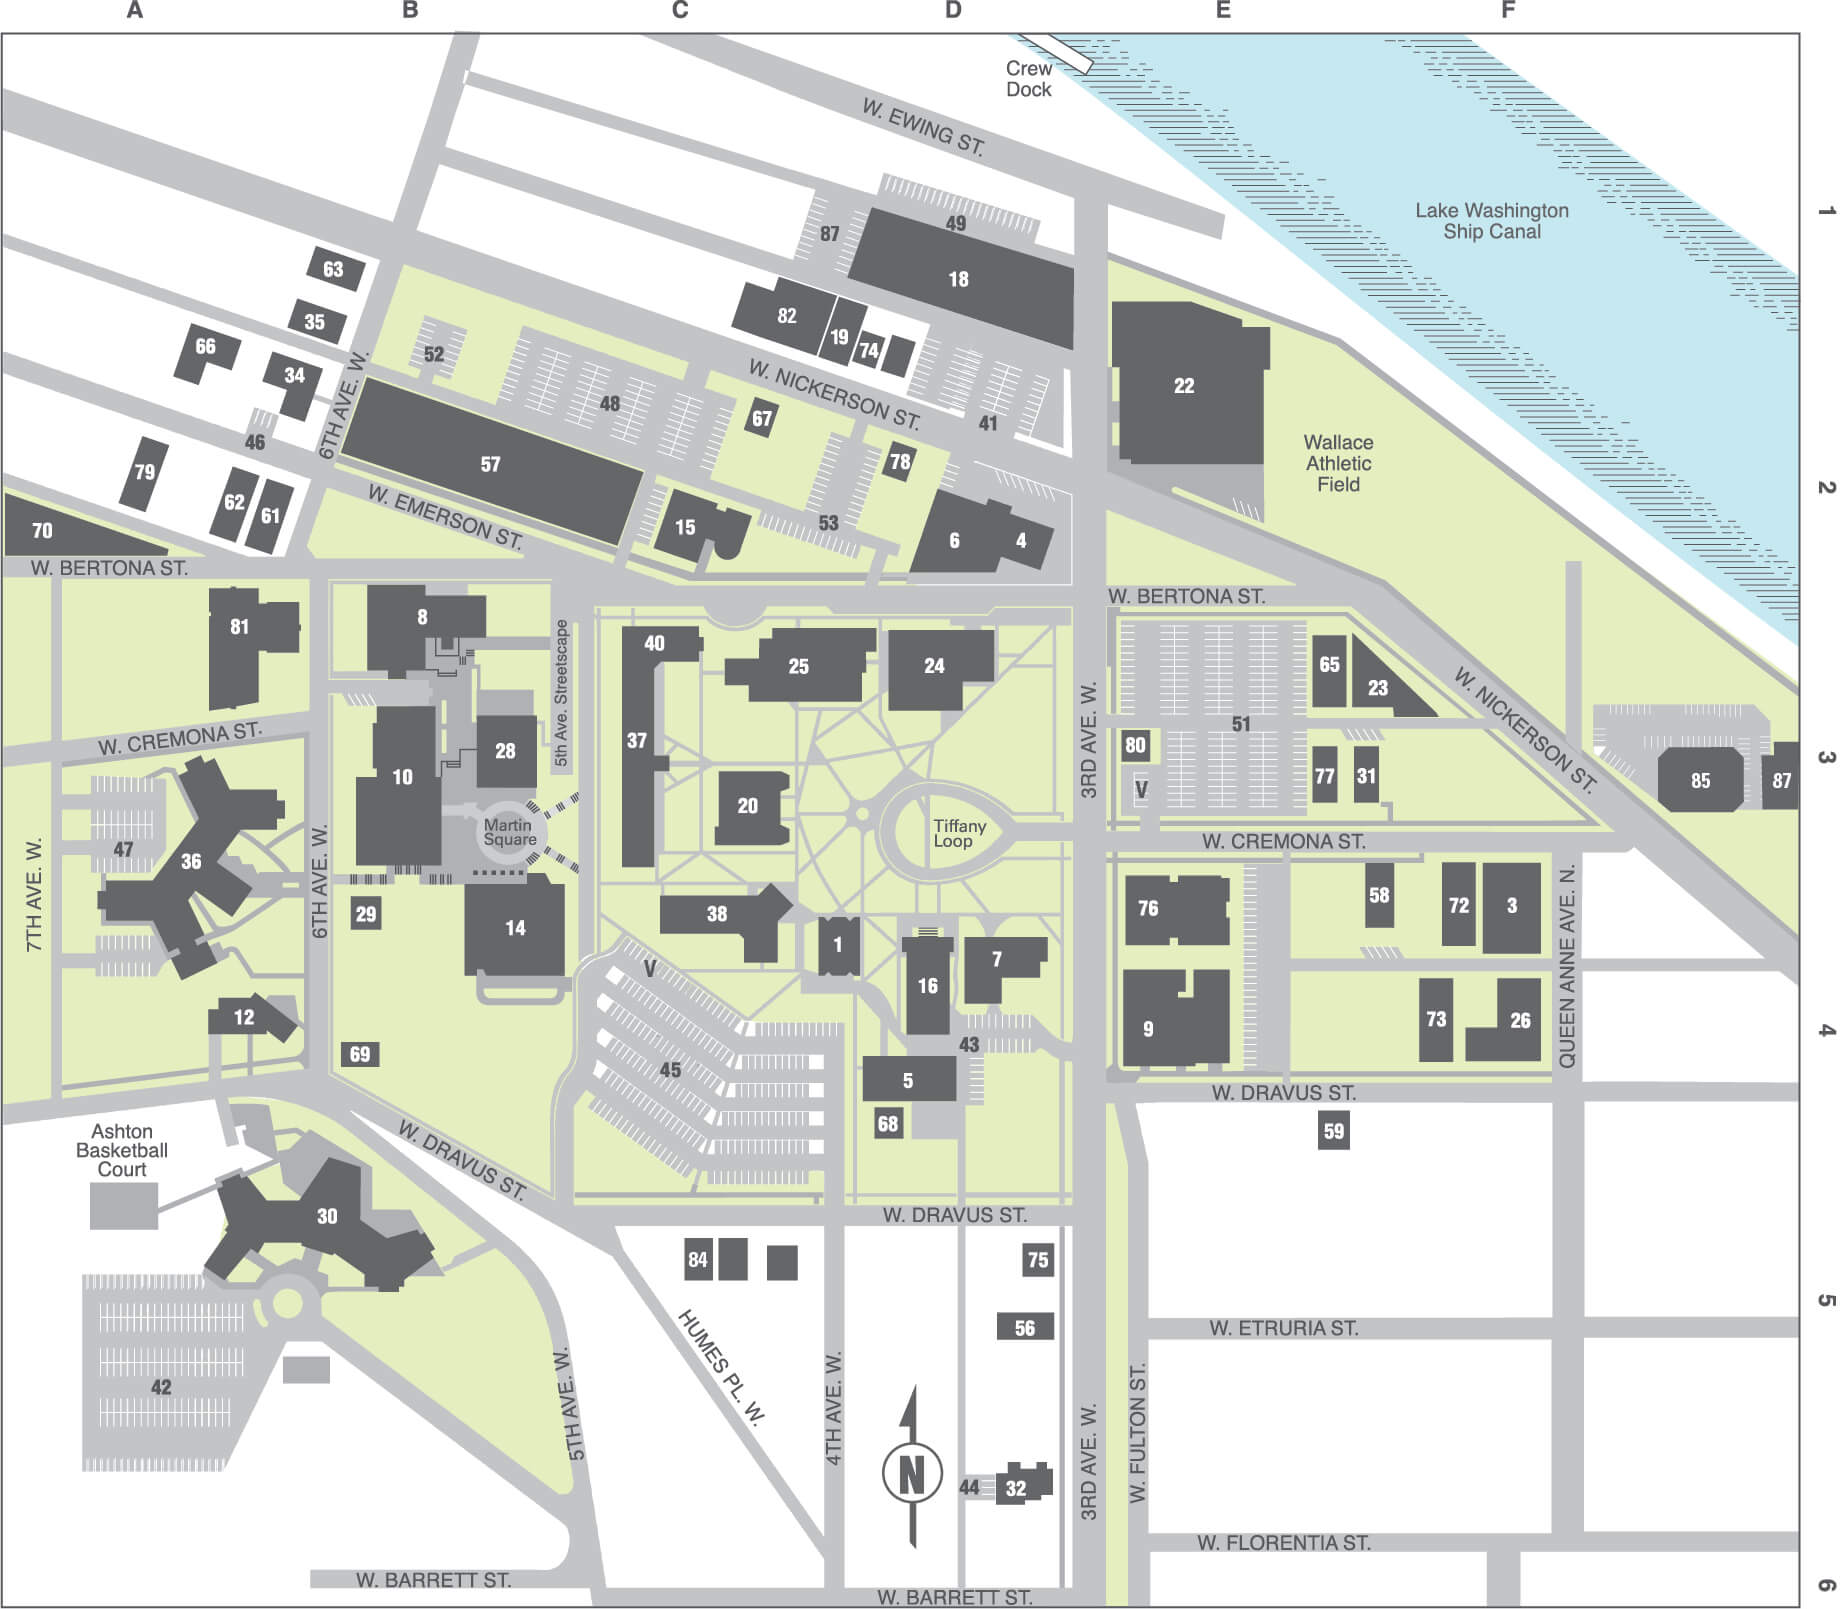 Millikin University Campus Map.Campus Maps Pearl Harbor Map